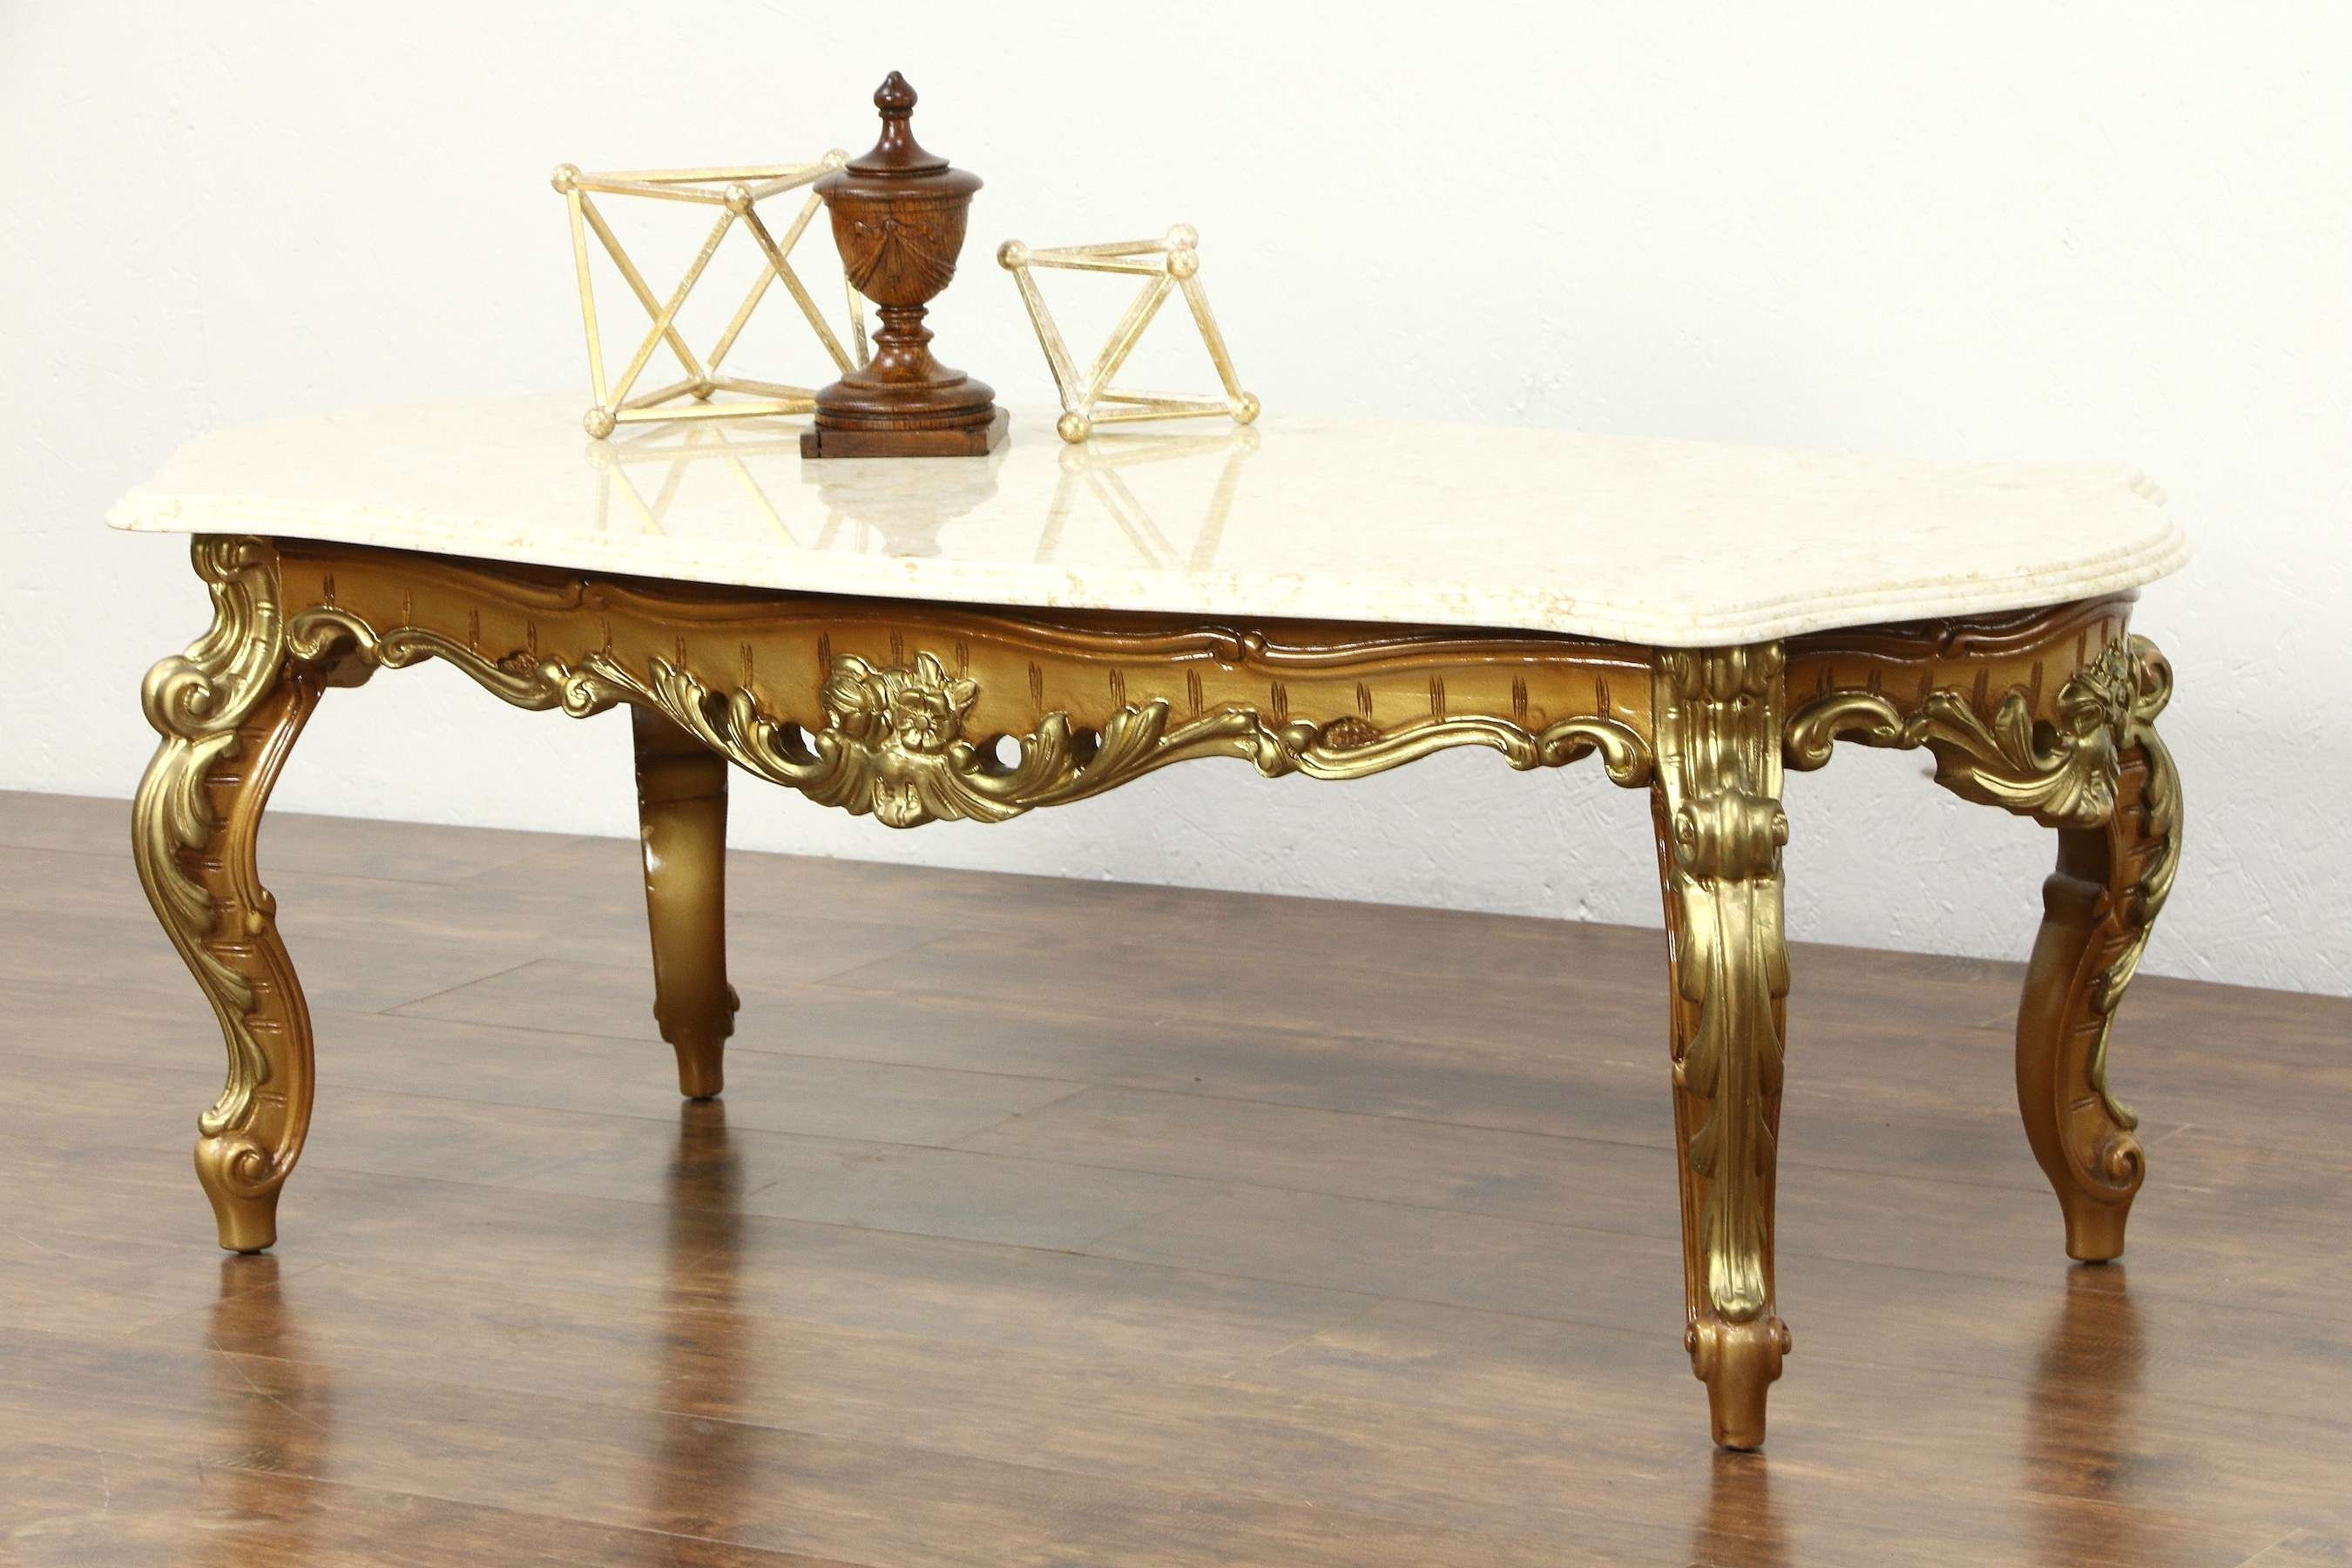 Sold – Carved Gold & Bronze Finish Vintage Coffee Table, Marble Within Recent Bronze Coffee Tables (View 18 of 20)